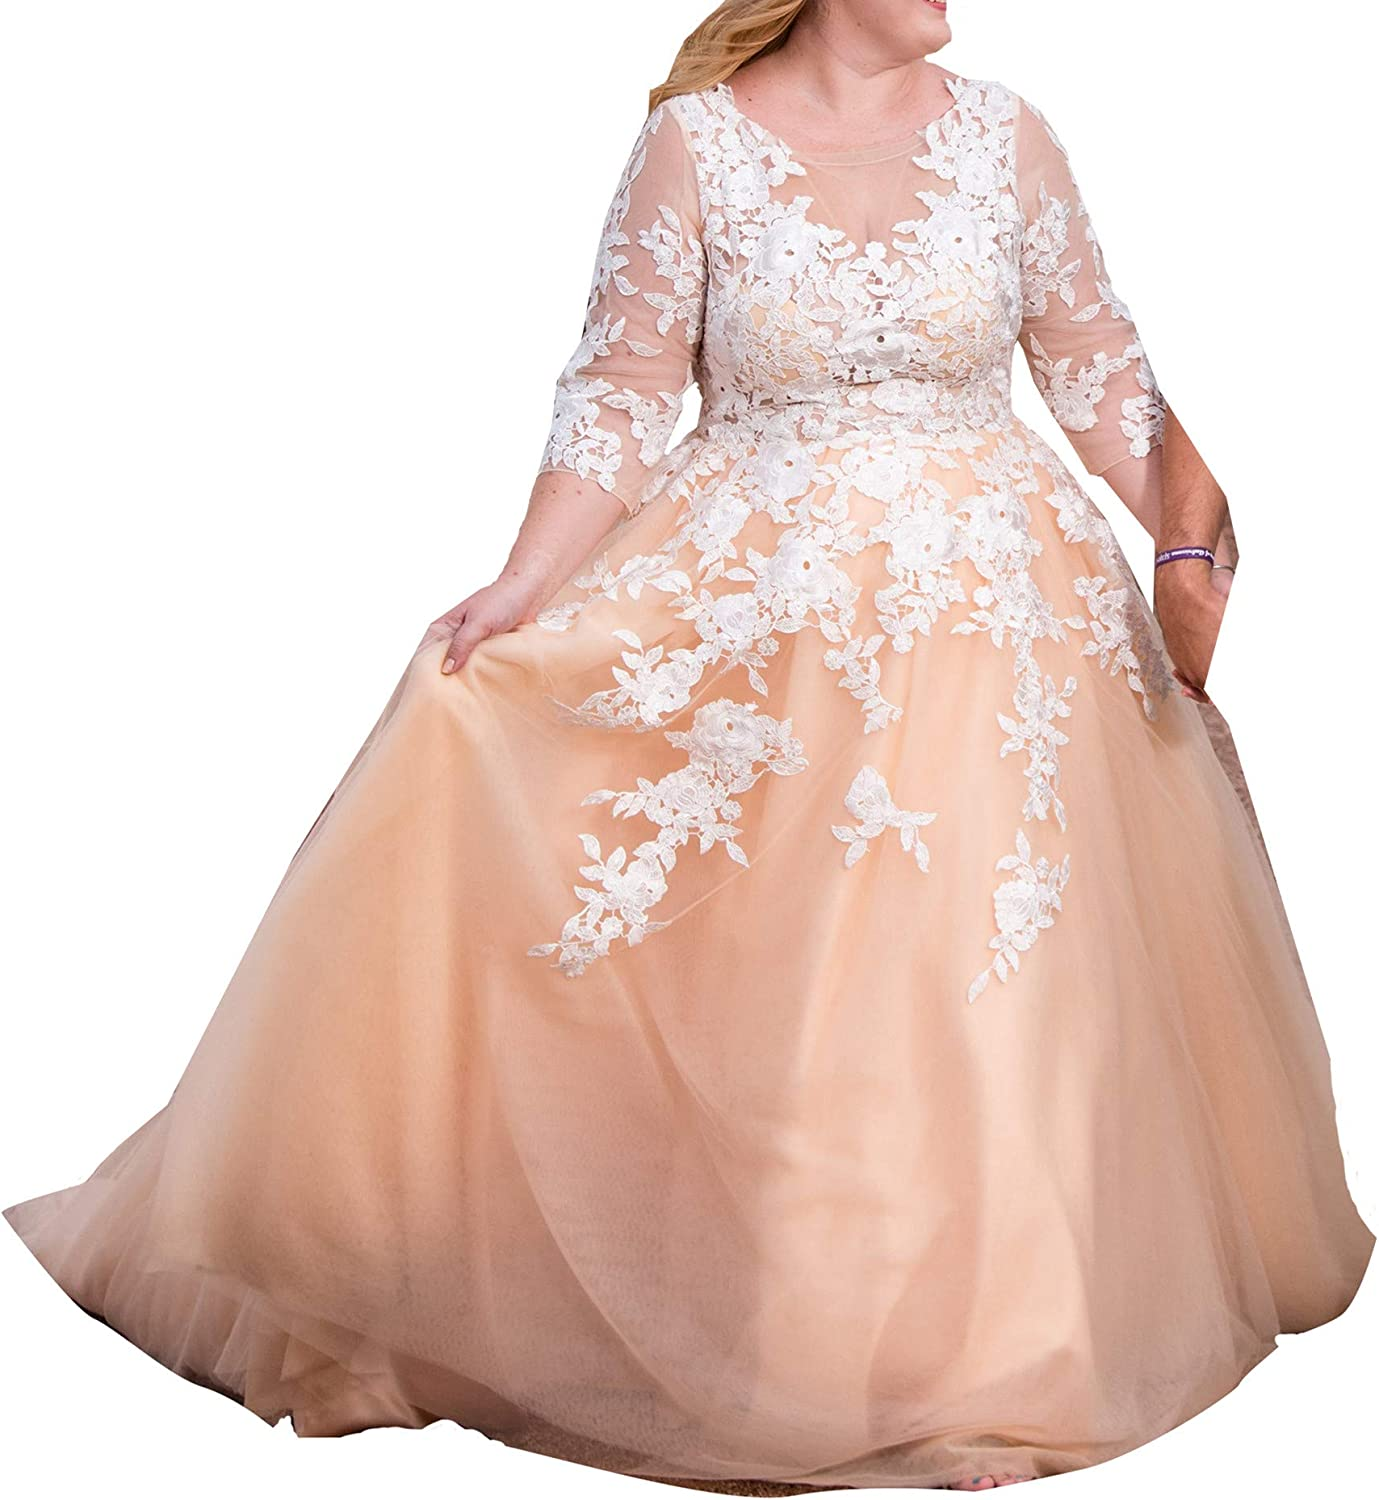 iluckin Casual Boho Sexy Women's A Beauty products Lace Line Neck Wedding Be super welcome Dres V